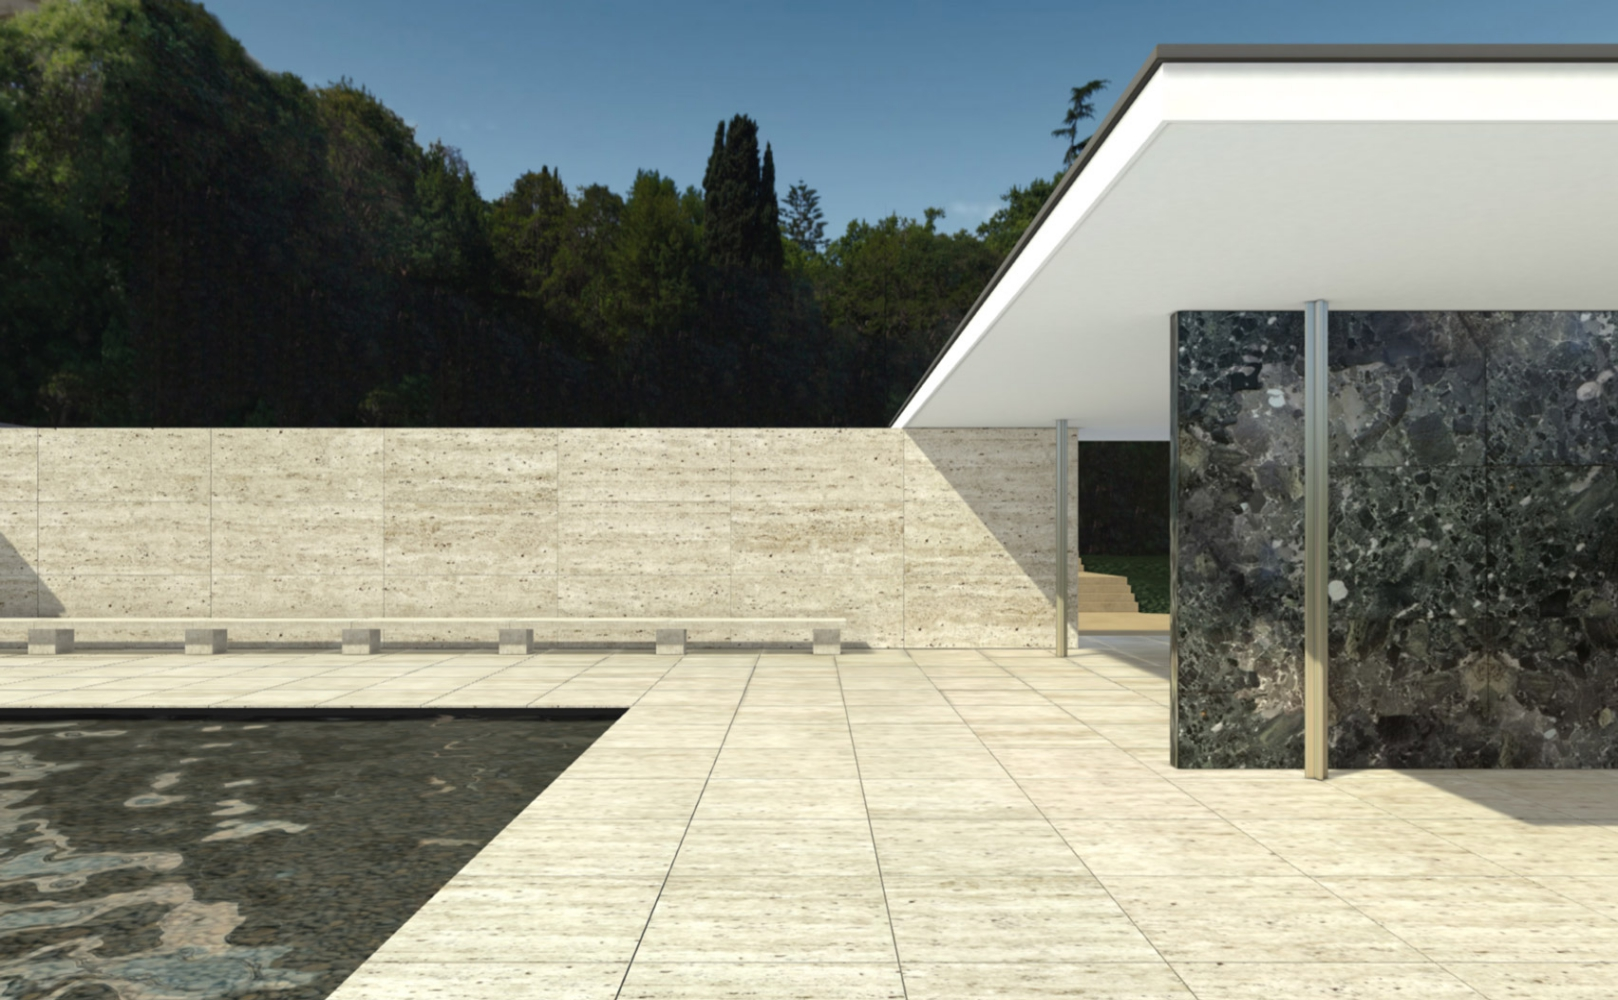 virtual-tour-mies-van-der-rohe-foundation-cl3ver-architecture-design-virtual-reality_dezeen_1704_hero_b